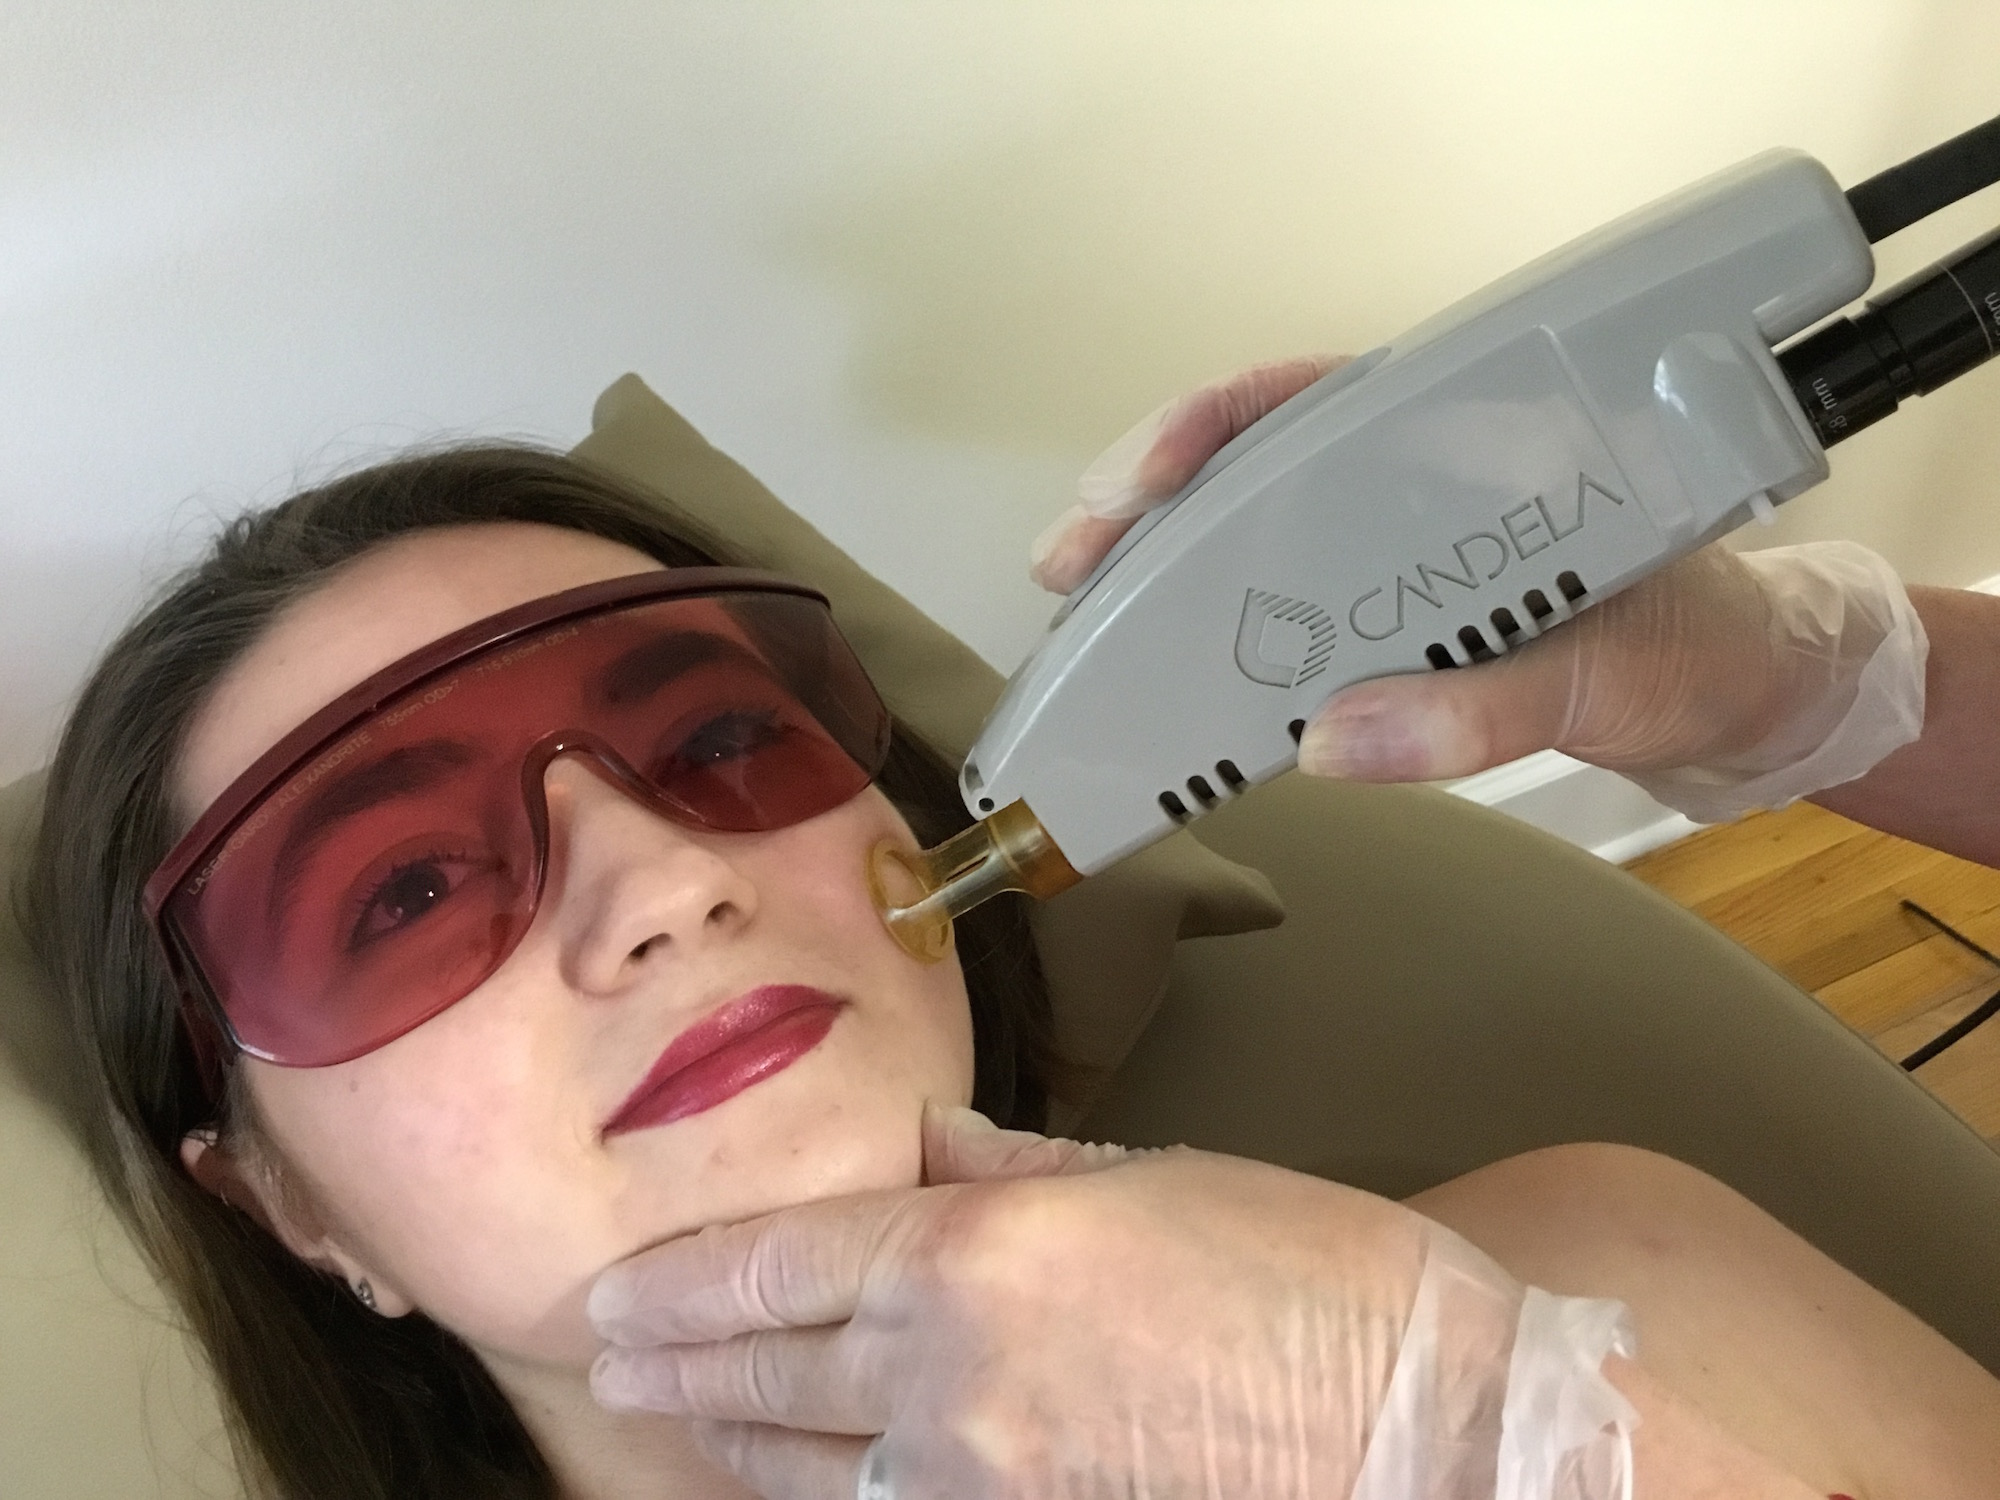 berkshire hair removal laser treatment pittsfield ma 01201